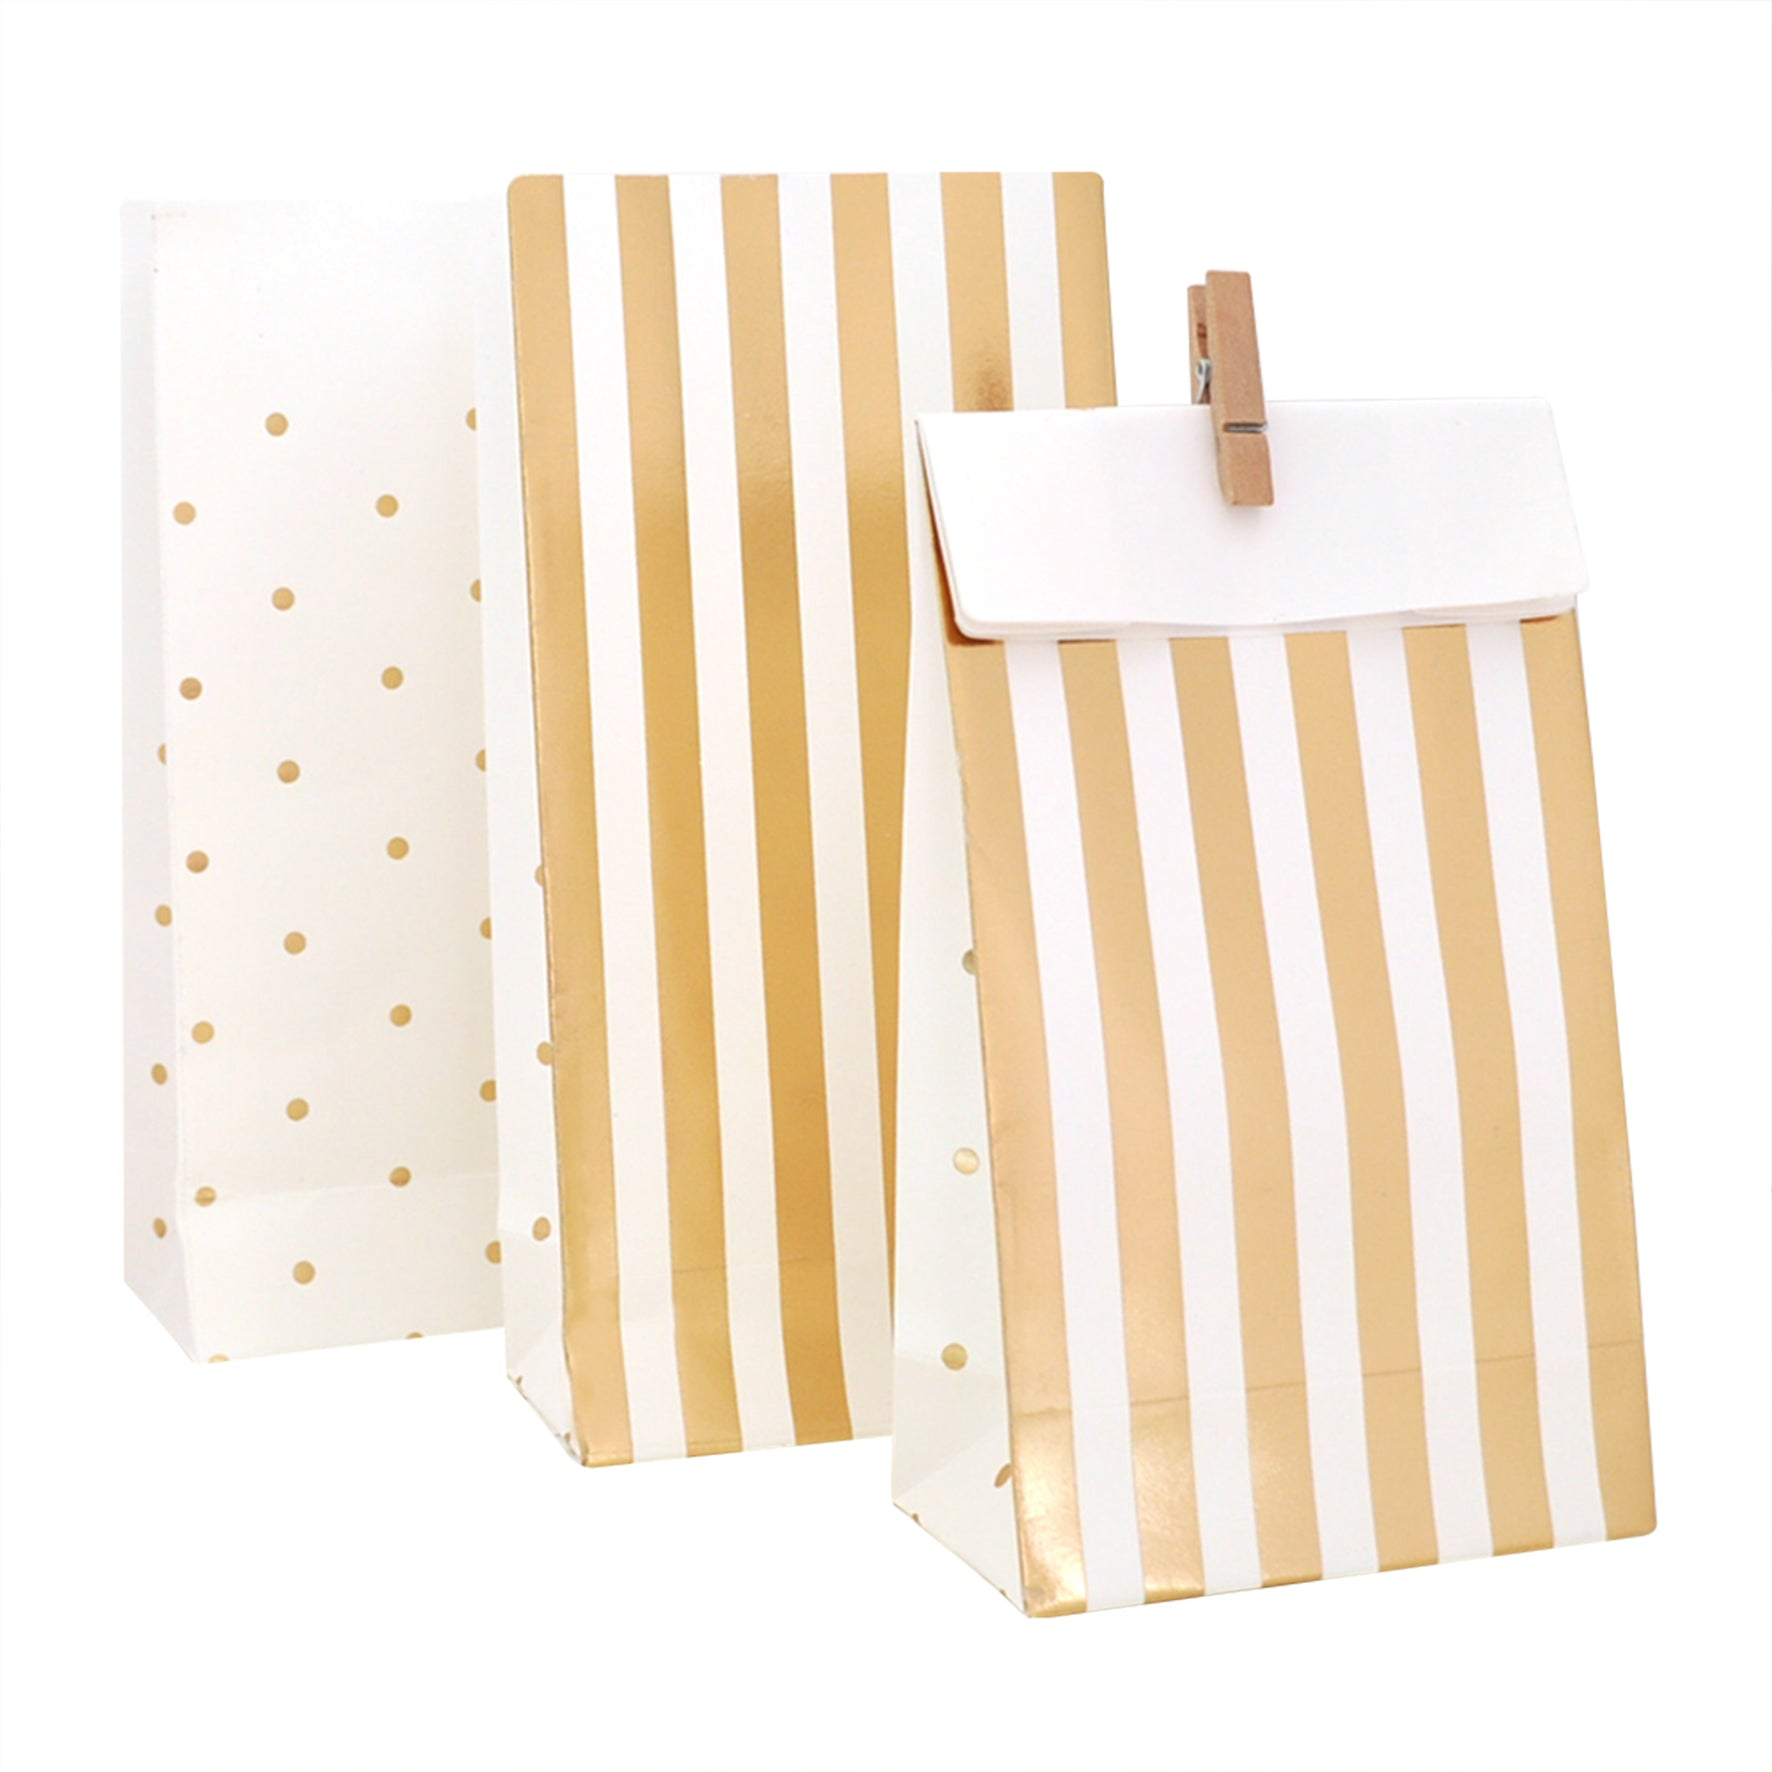 Gold Stripes & Dots - Treat Bag - Pack of 10 - Illume Partyware